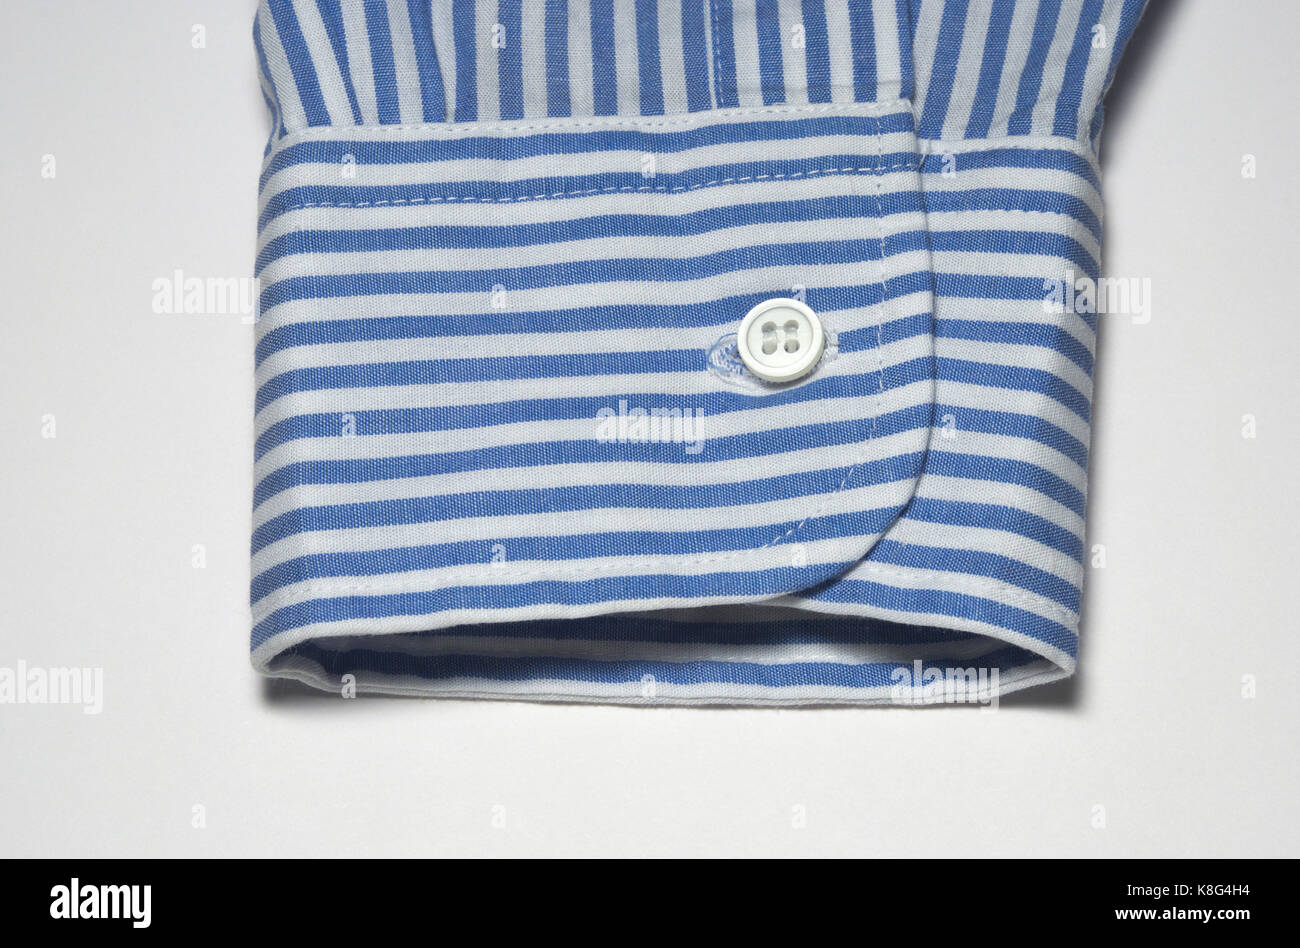 Striped Shirt Cuff Of Sleeve - Stock Image